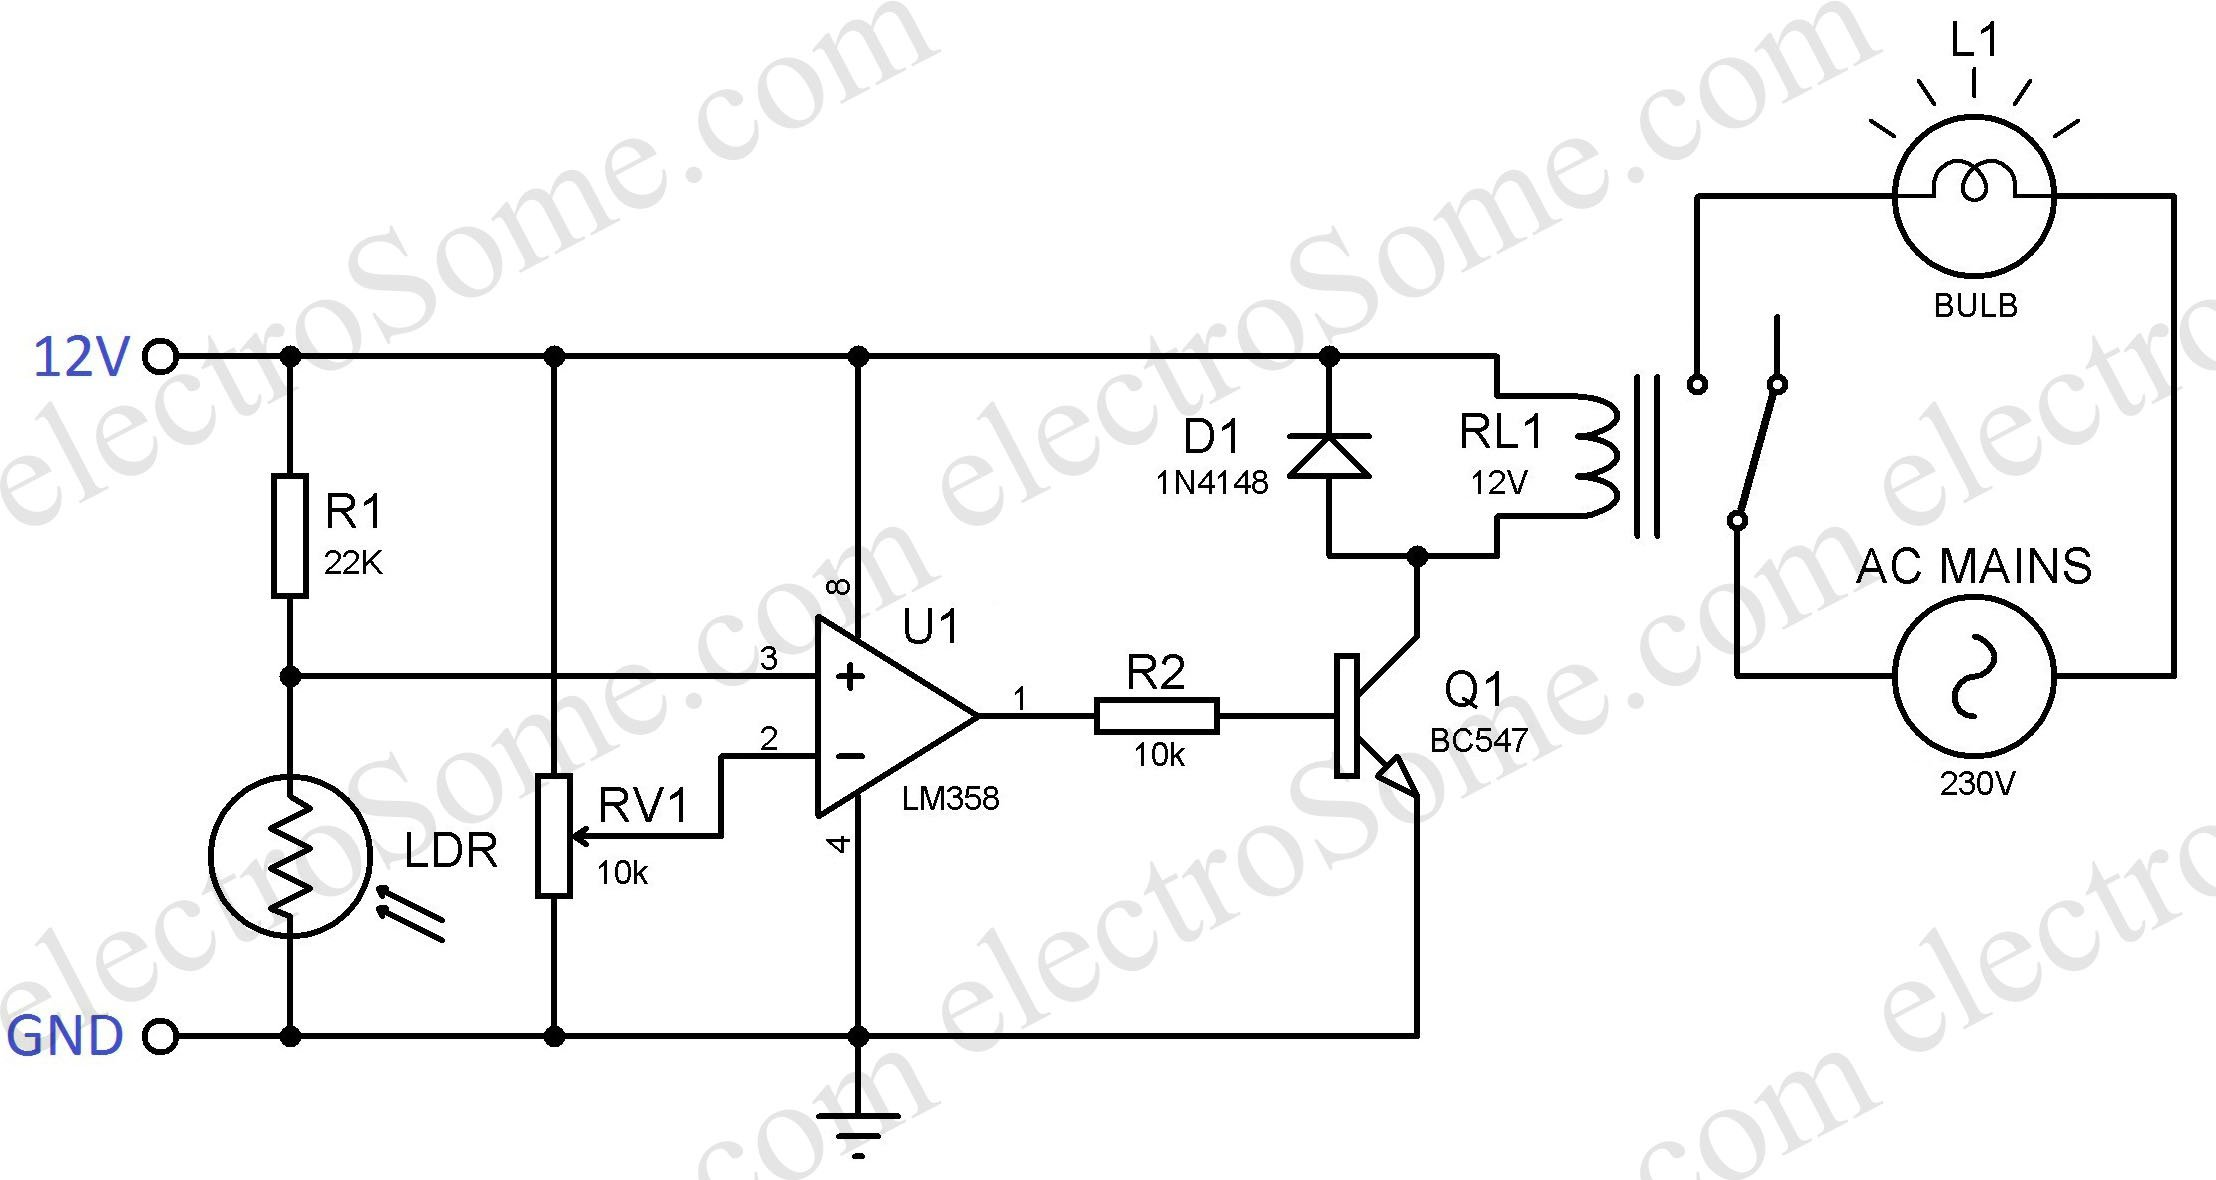 Simple Day Night Light Sensor Circuit Wiring And Diagram Hub Photo Of Automatic Lamp Using Ldr Door Knob With Built In Timer